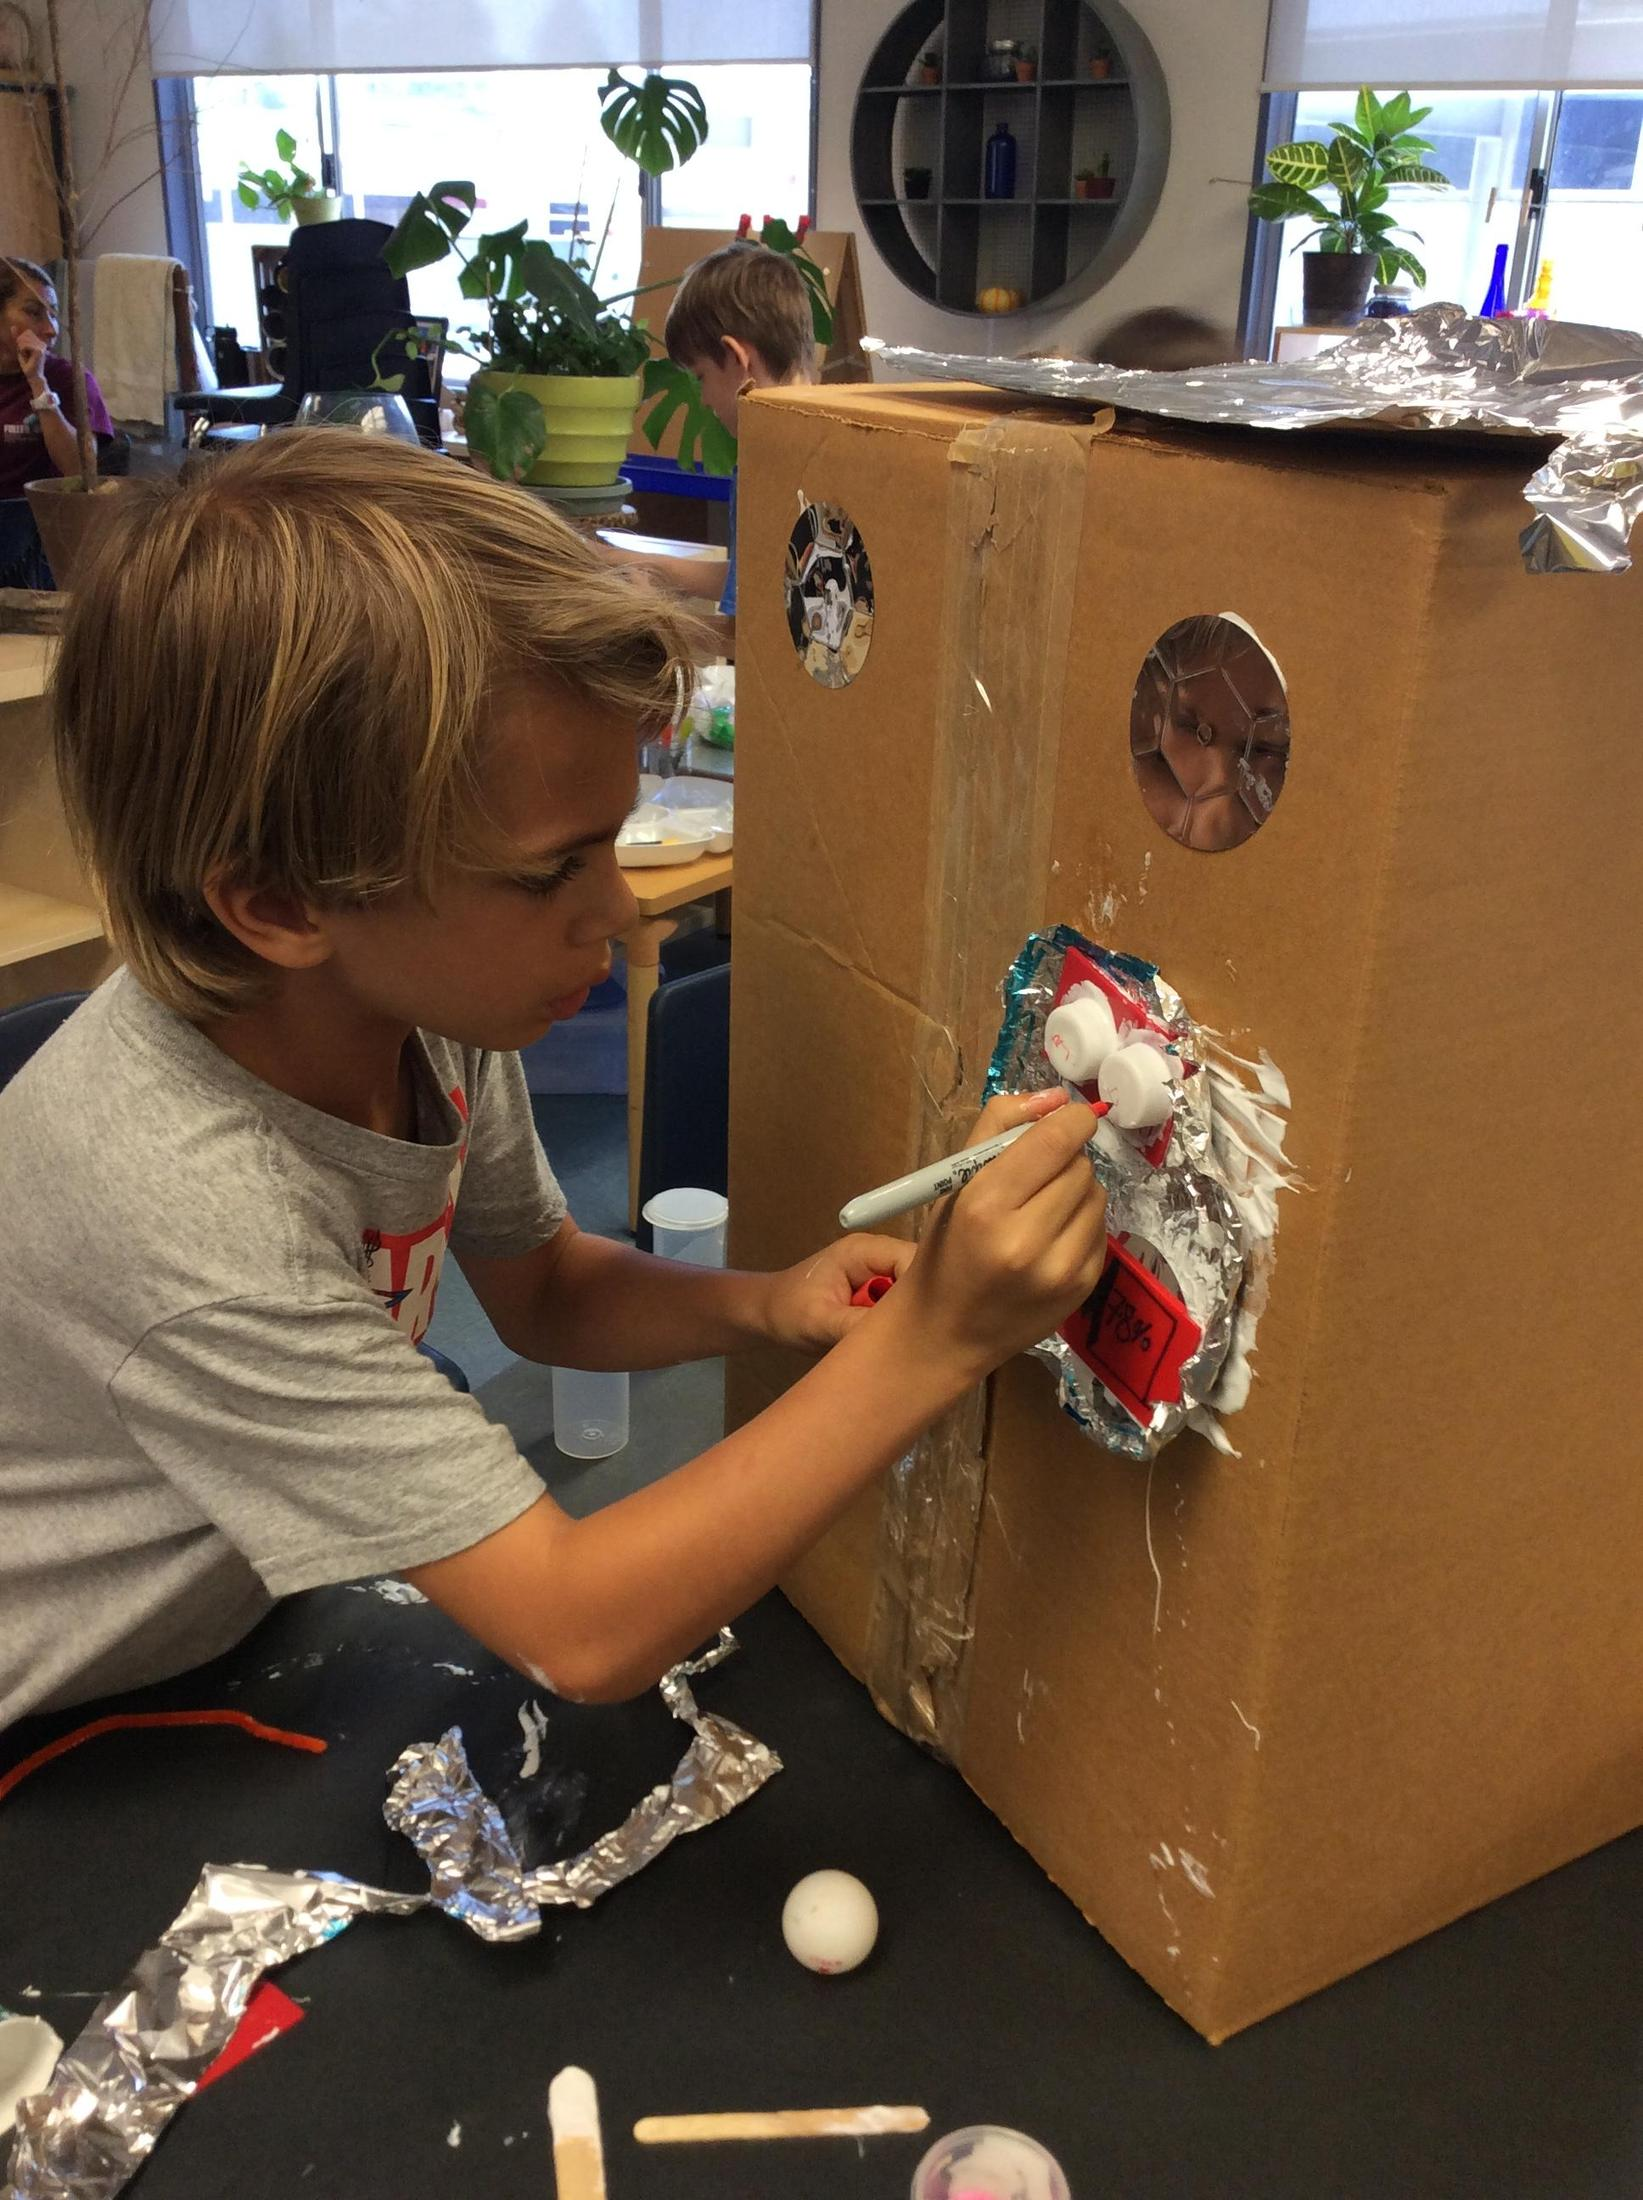 Children are using recycled materials to design cardboard robots.